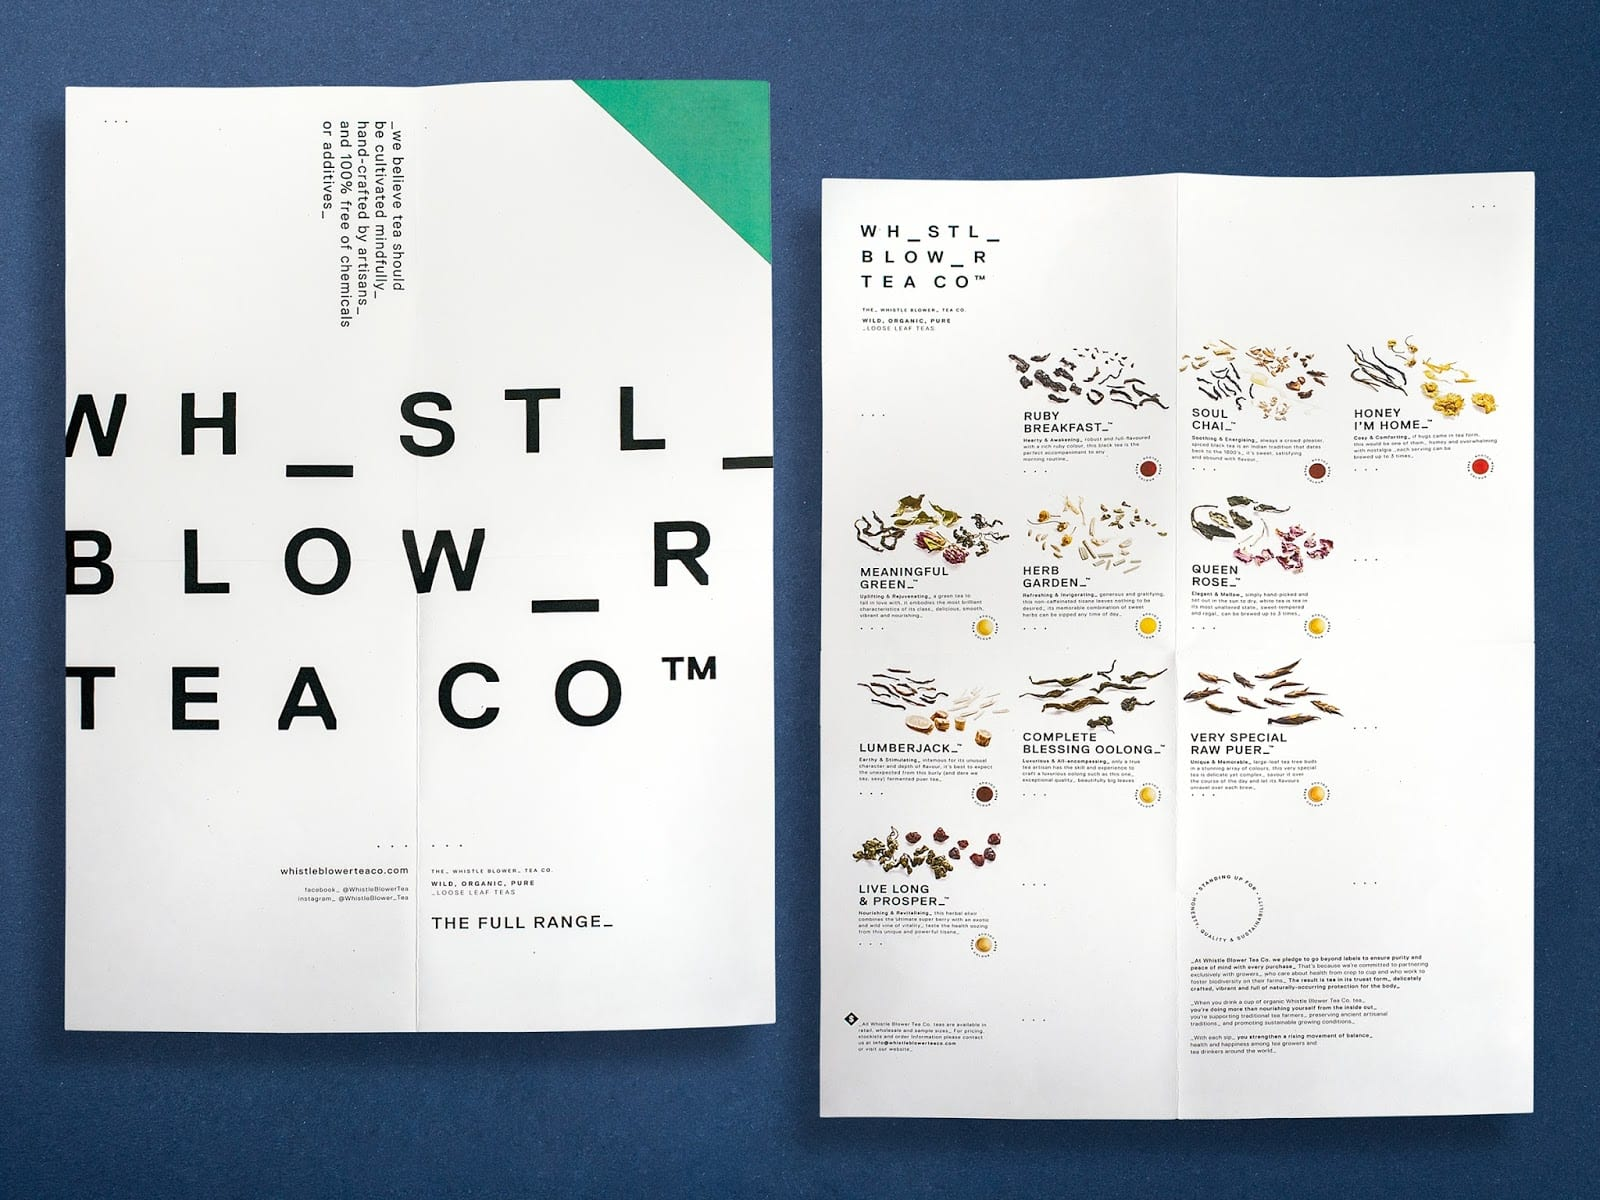 7 BlackSquidDesign Whistle Blower Tea Co Poster - Ach, tie obaly – Whistle Blower Tea Co.